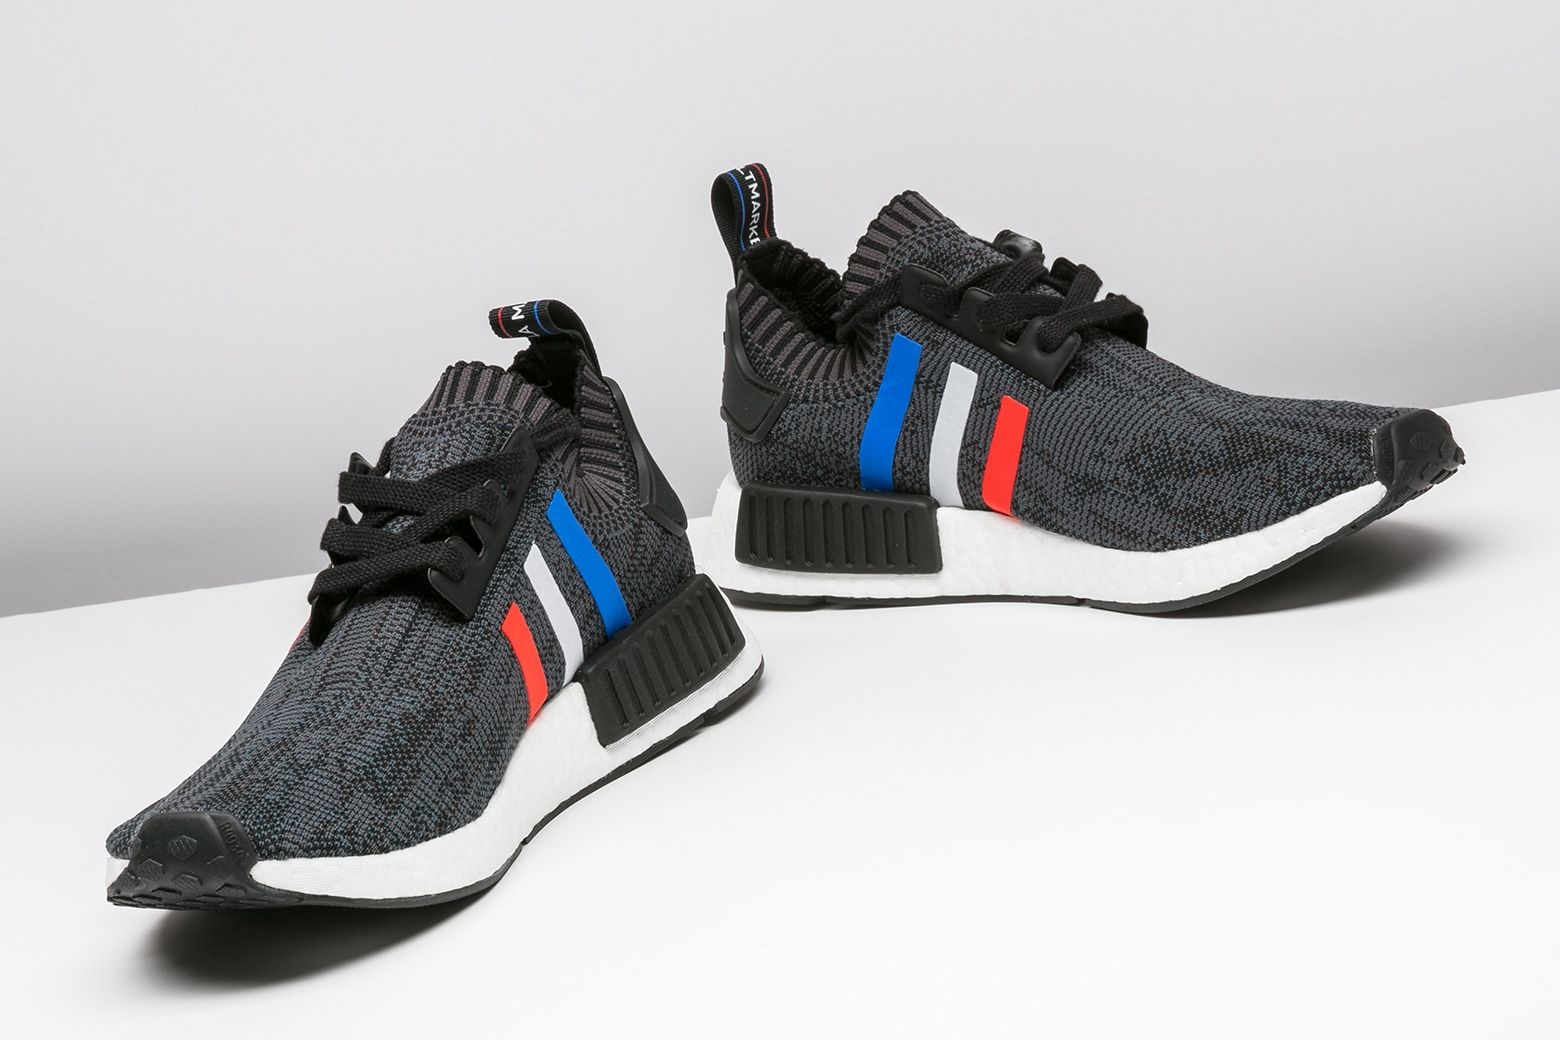 separation shoes 71dcc 3f6ba Adidas NMD_R1 PK - BB2887 | adidas NMD in 2019 | Adidas nmd ...